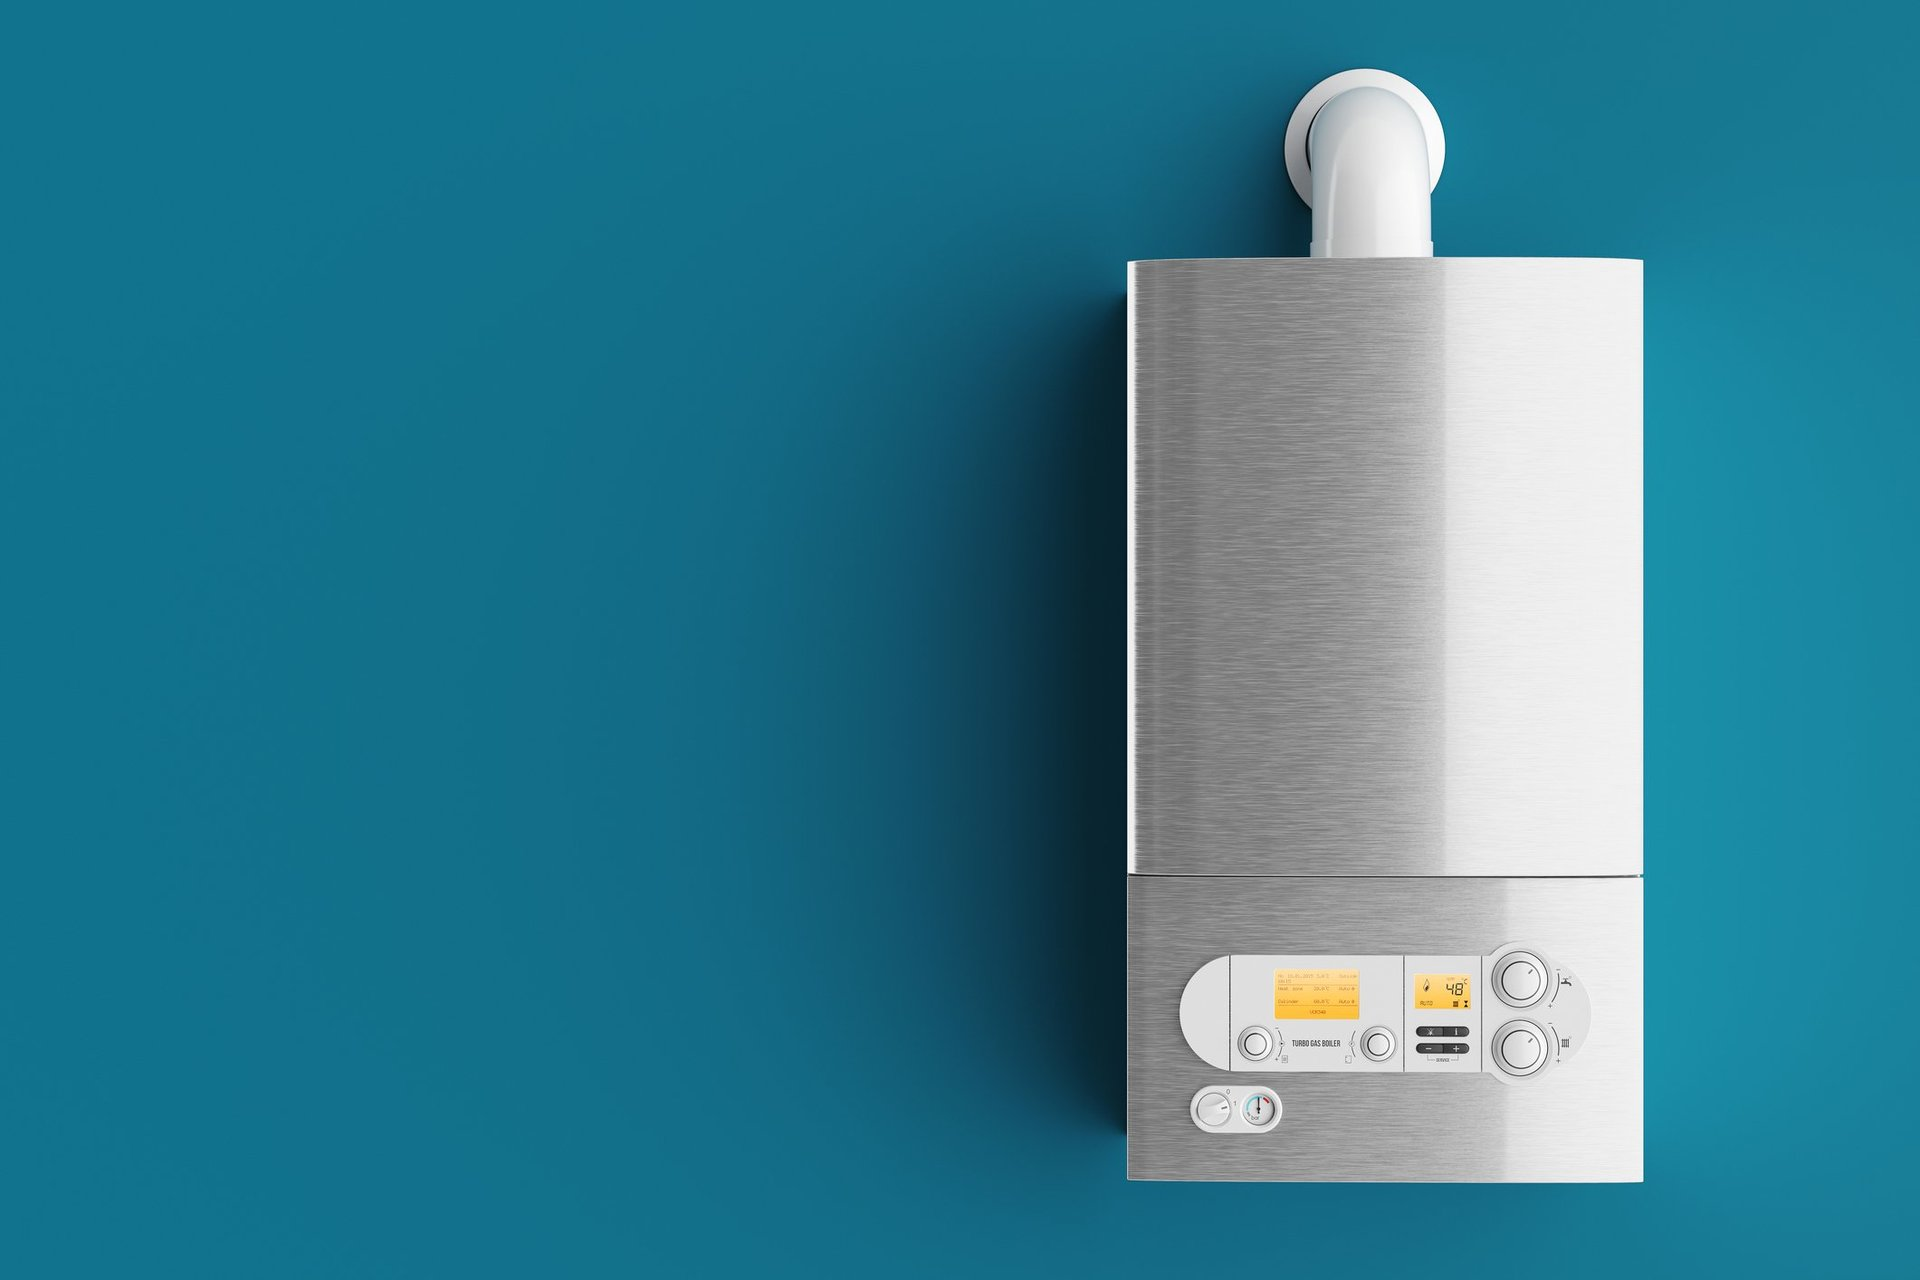 The Pros & Cons of Tank-less Water Heaters